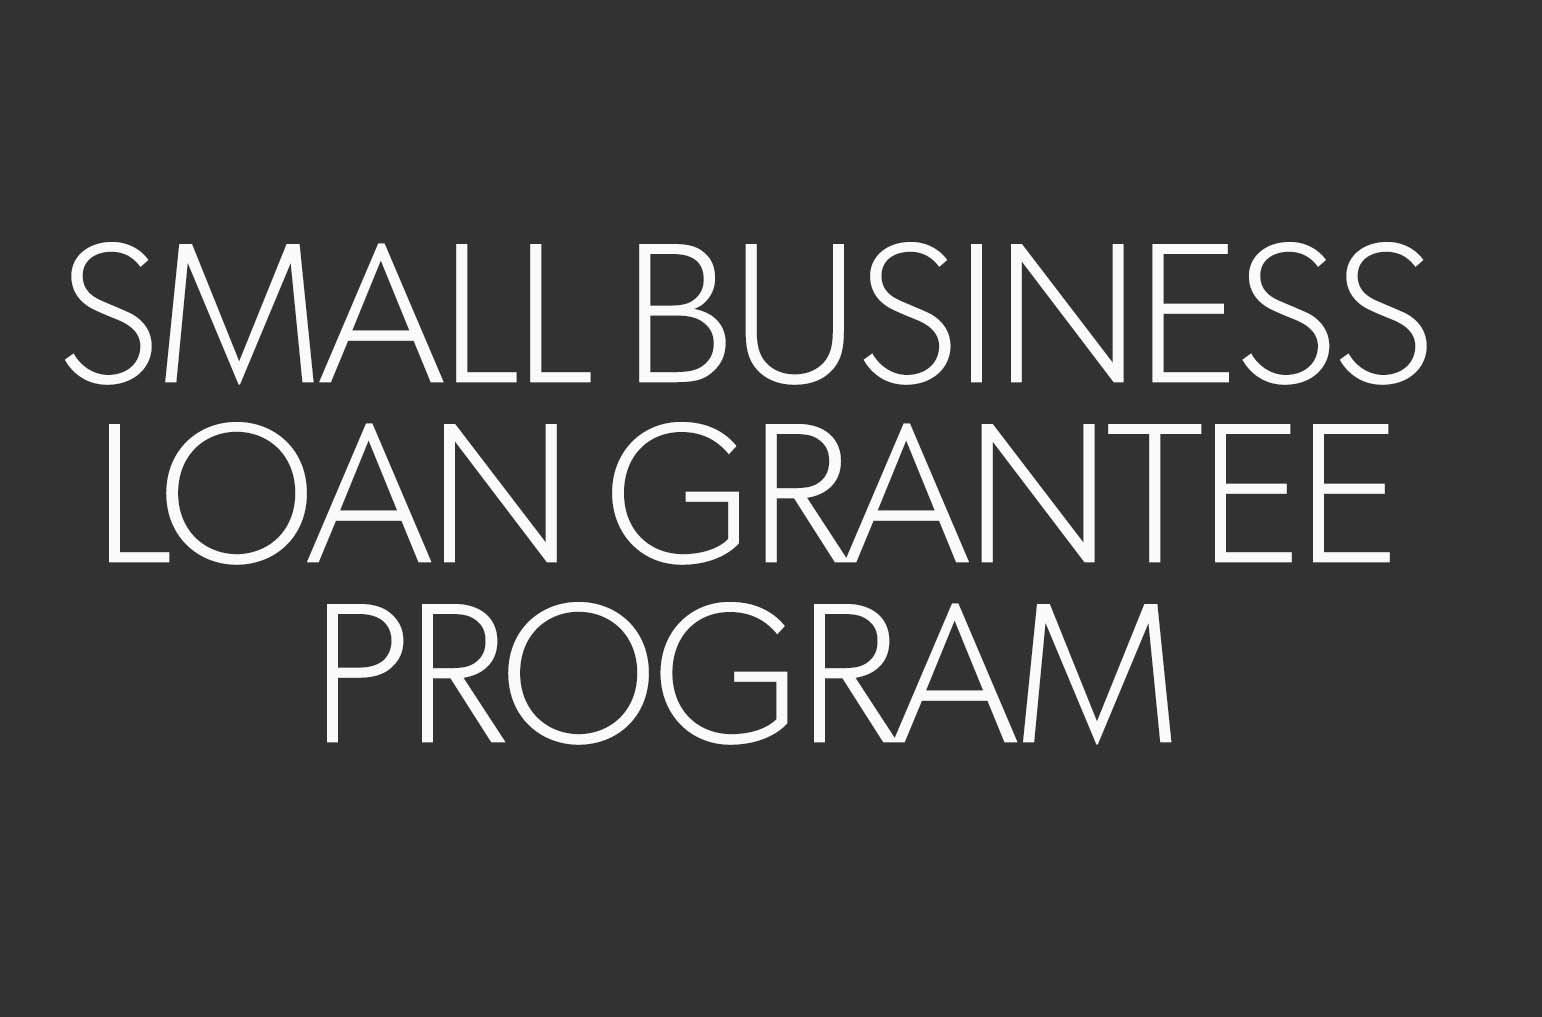 Small business loan grantee program